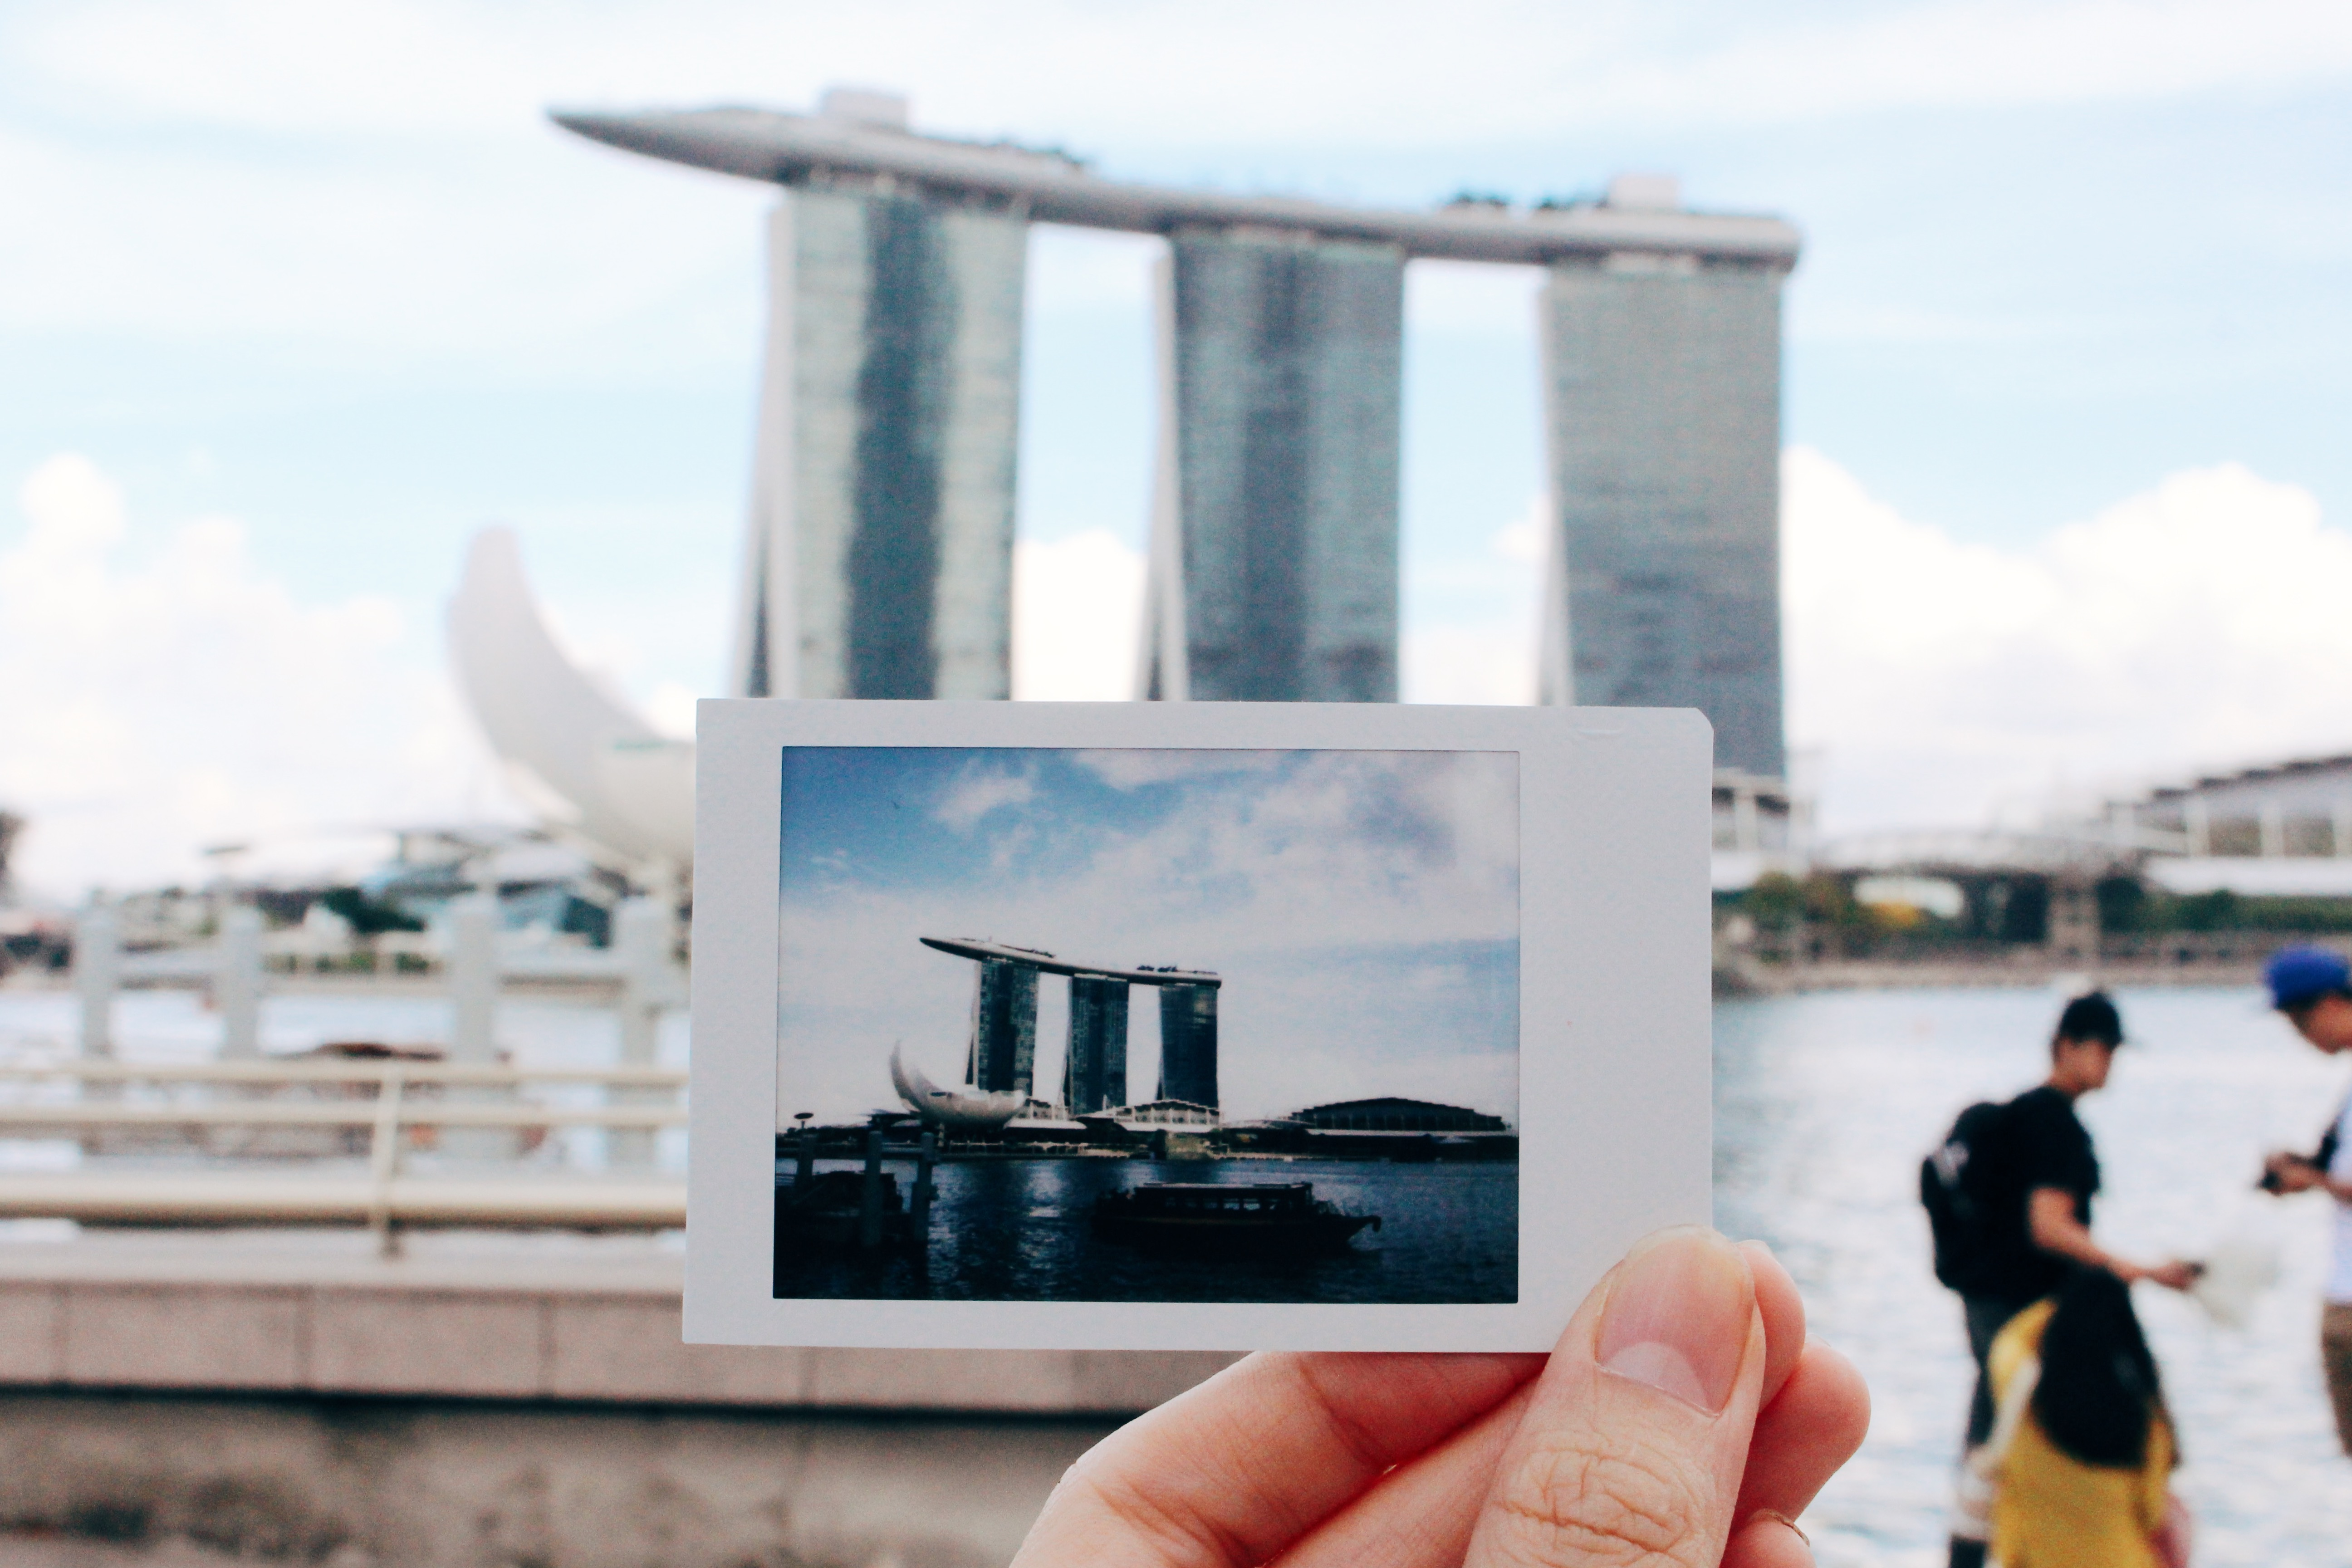 In 2018, there has been a rise of 16 per cent in the number of Indian tourists as 1.32 million Indian visitors landed in Singapore. Photo: Connected to India